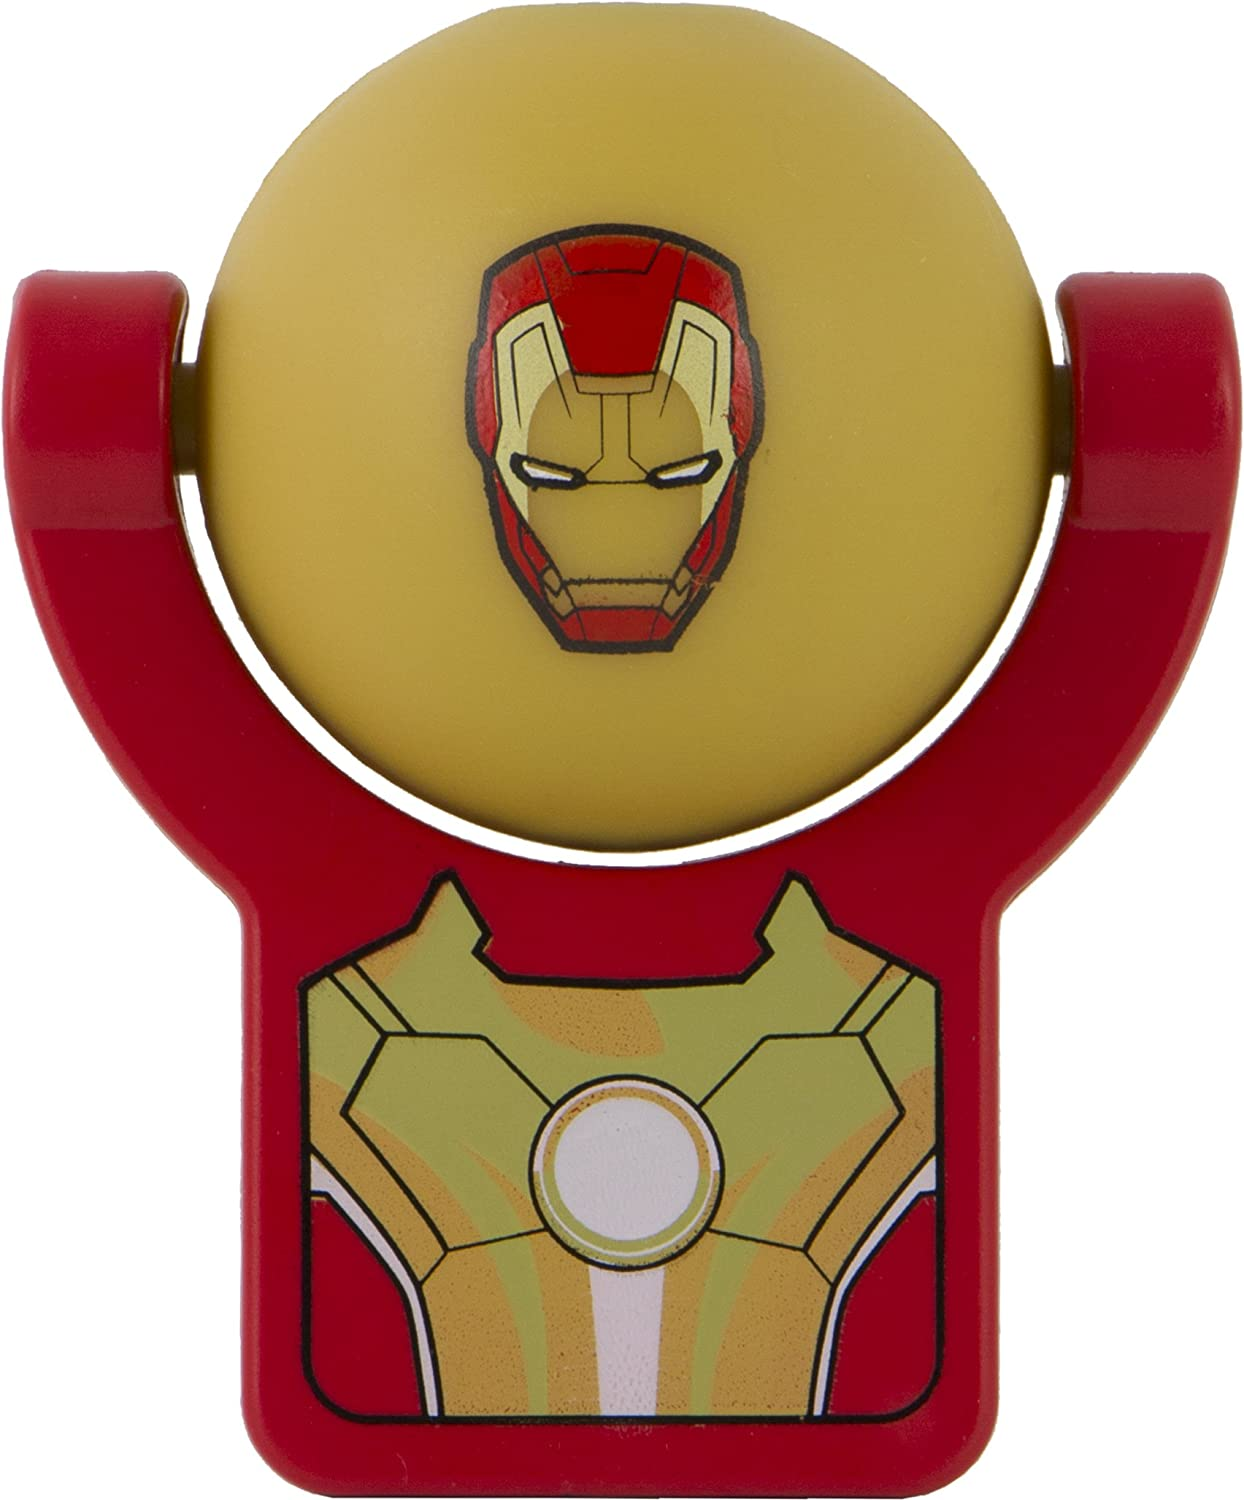 Marvel\'s Iron Man 3 Projectables LED Plug-In Night Light, 13342 ...